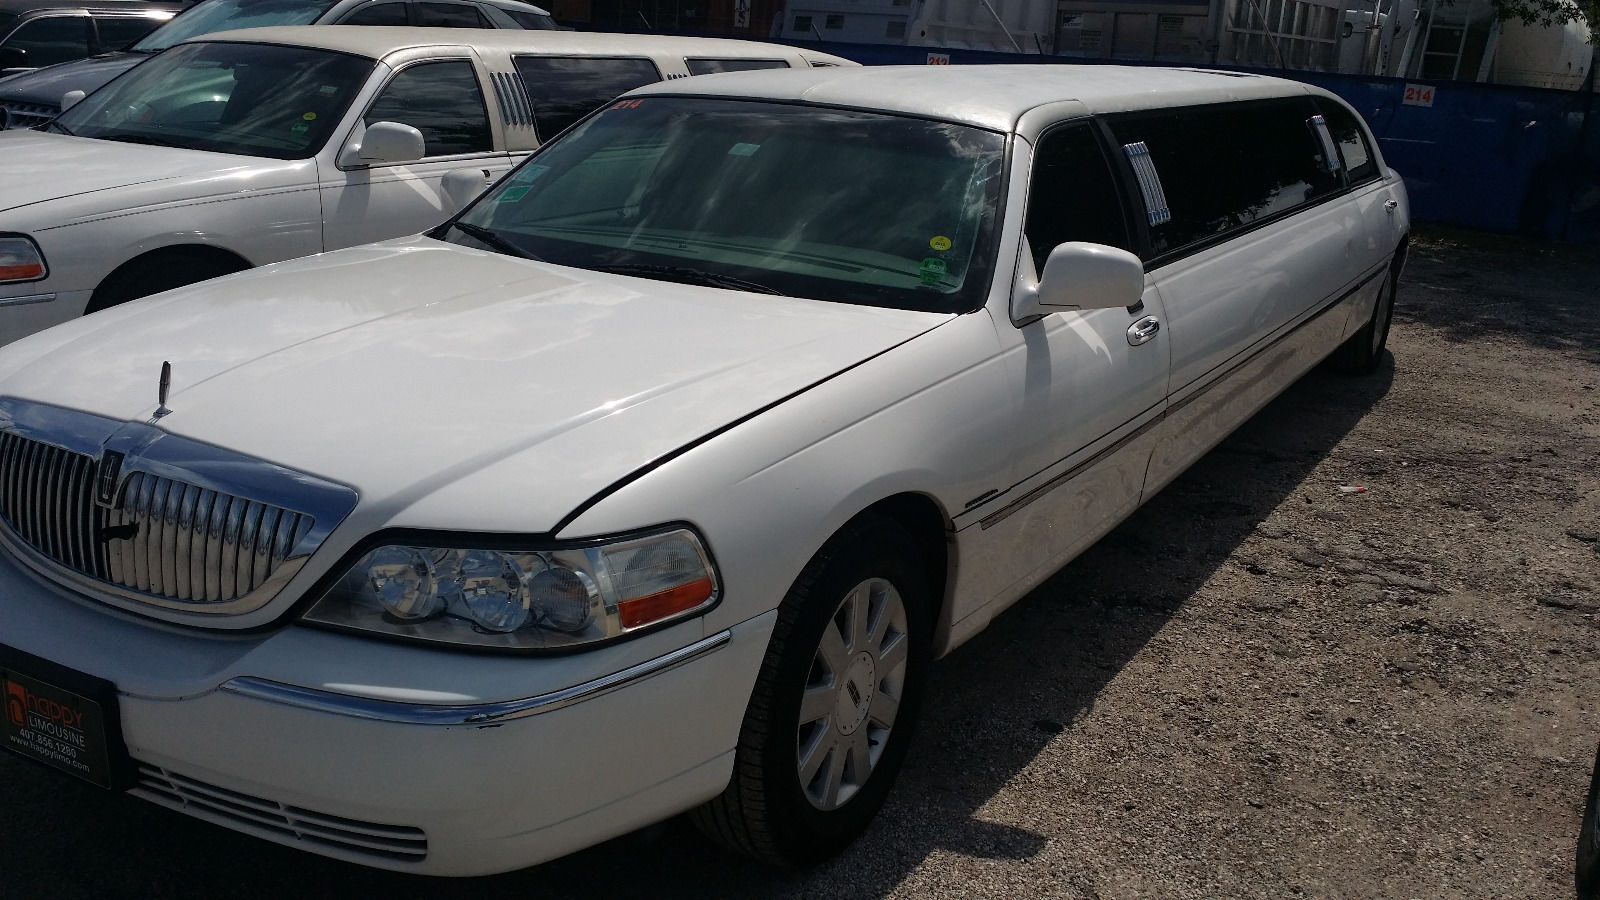 2005 lincoln town car krystal 5 door limousine for sale. Black Bedroom Furniture Sets. Home Design Ideas